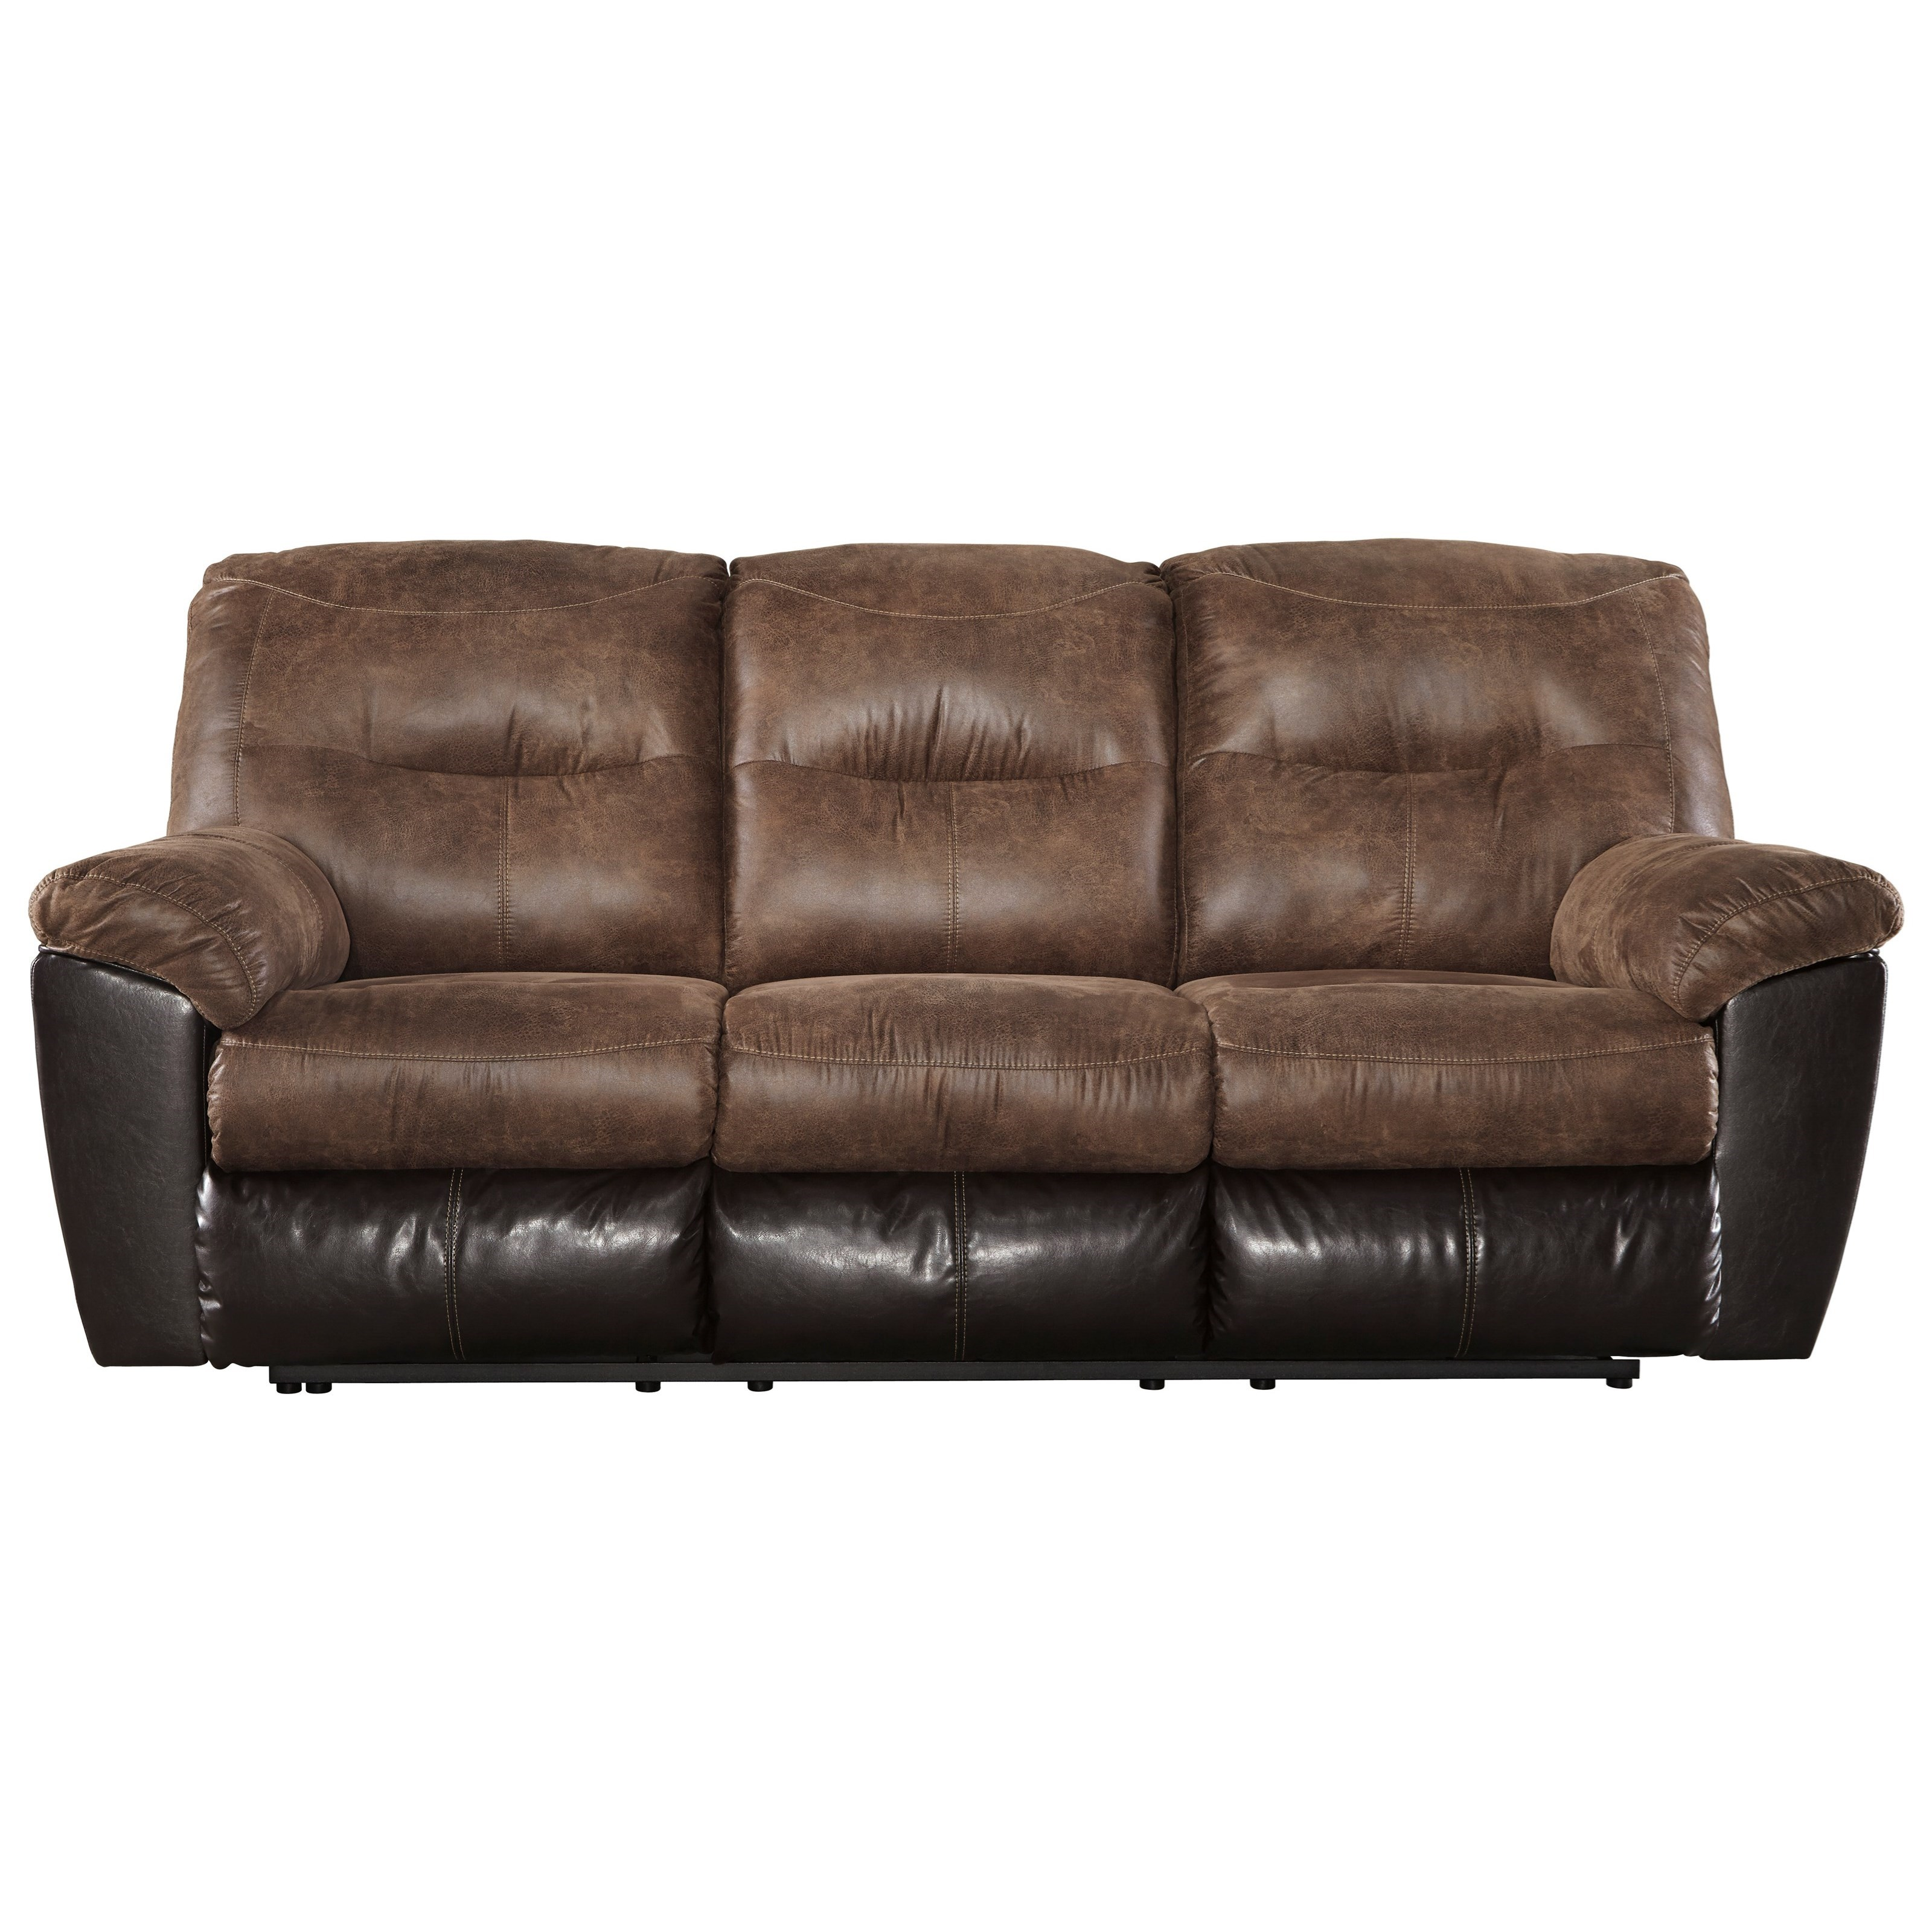 Signature Design by Ashley Follett Reclining Sofa - Item Number: 6520288